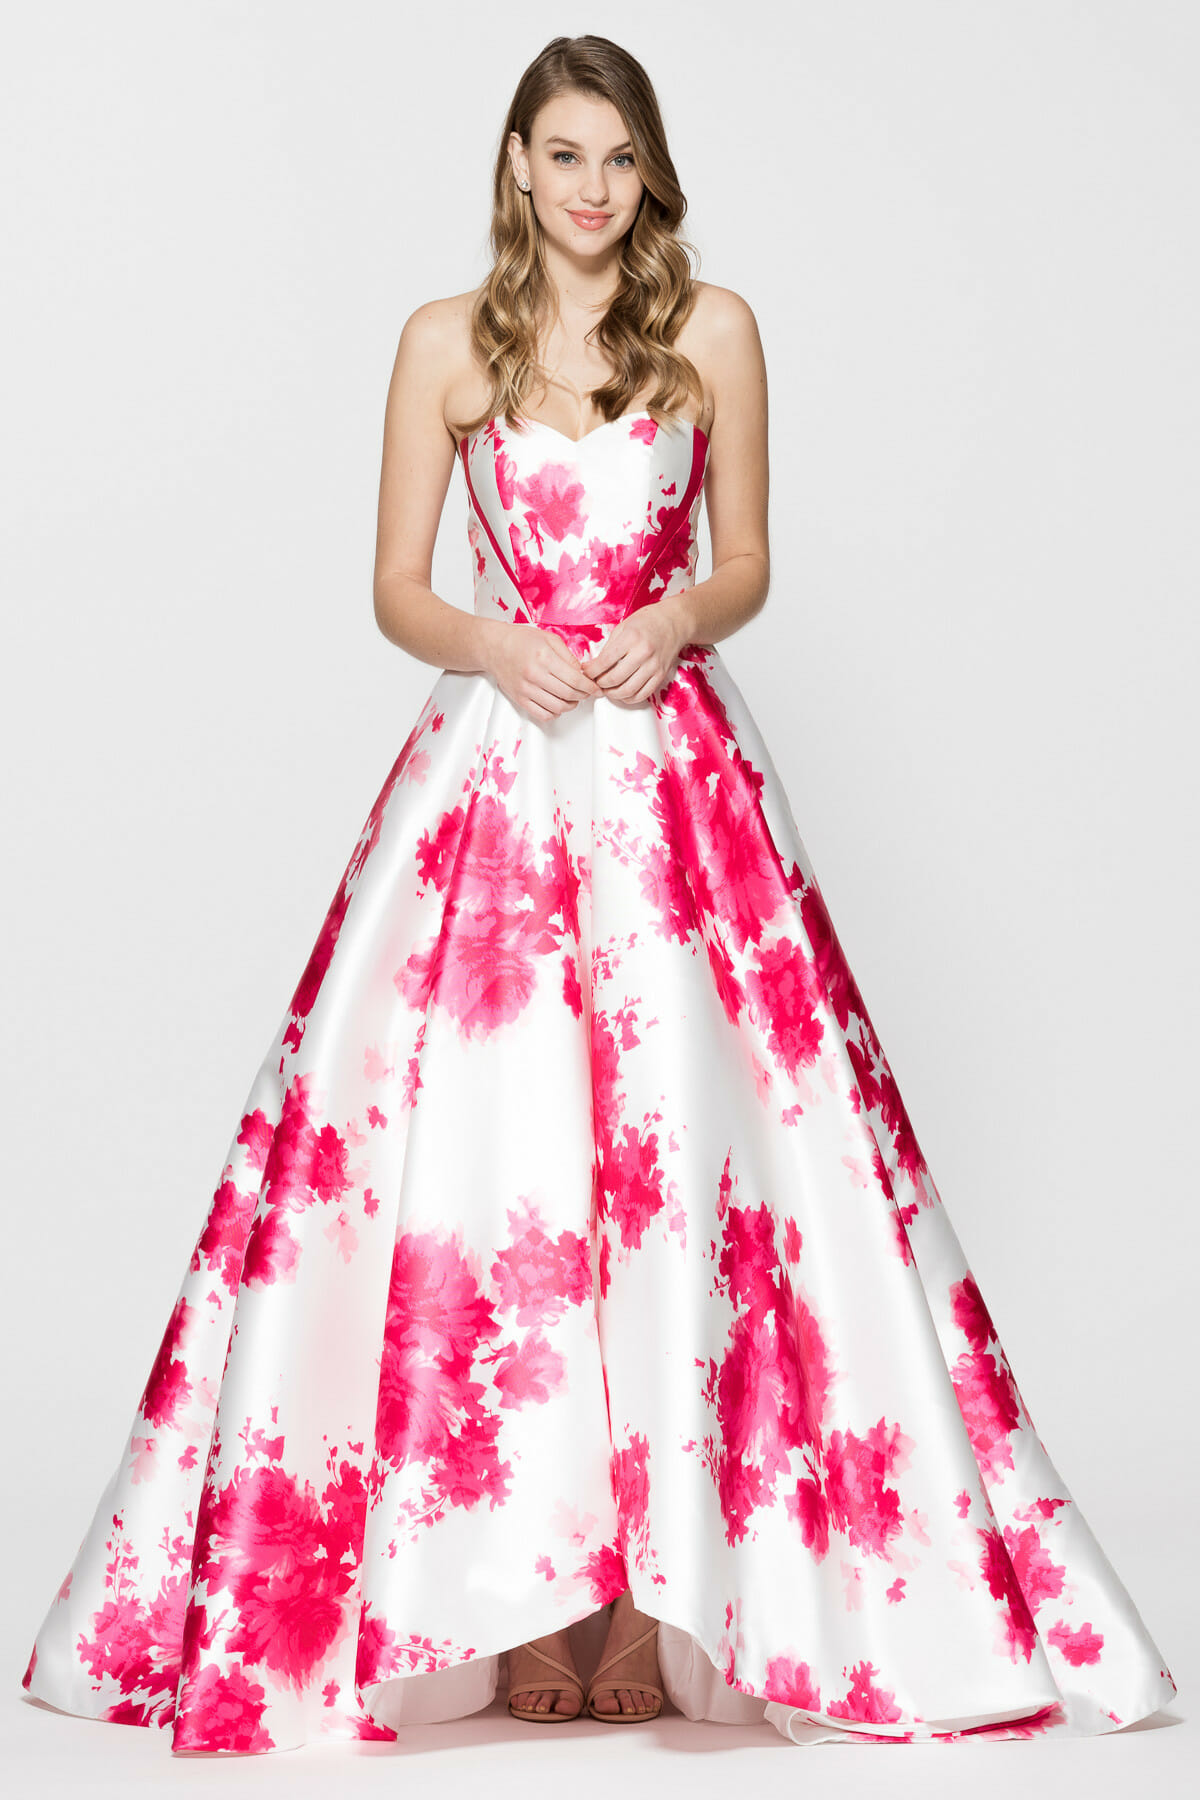 SWEET HEART, FLORAL, BALL GOWN | Shangri-La Dresses in San Antonio, TX